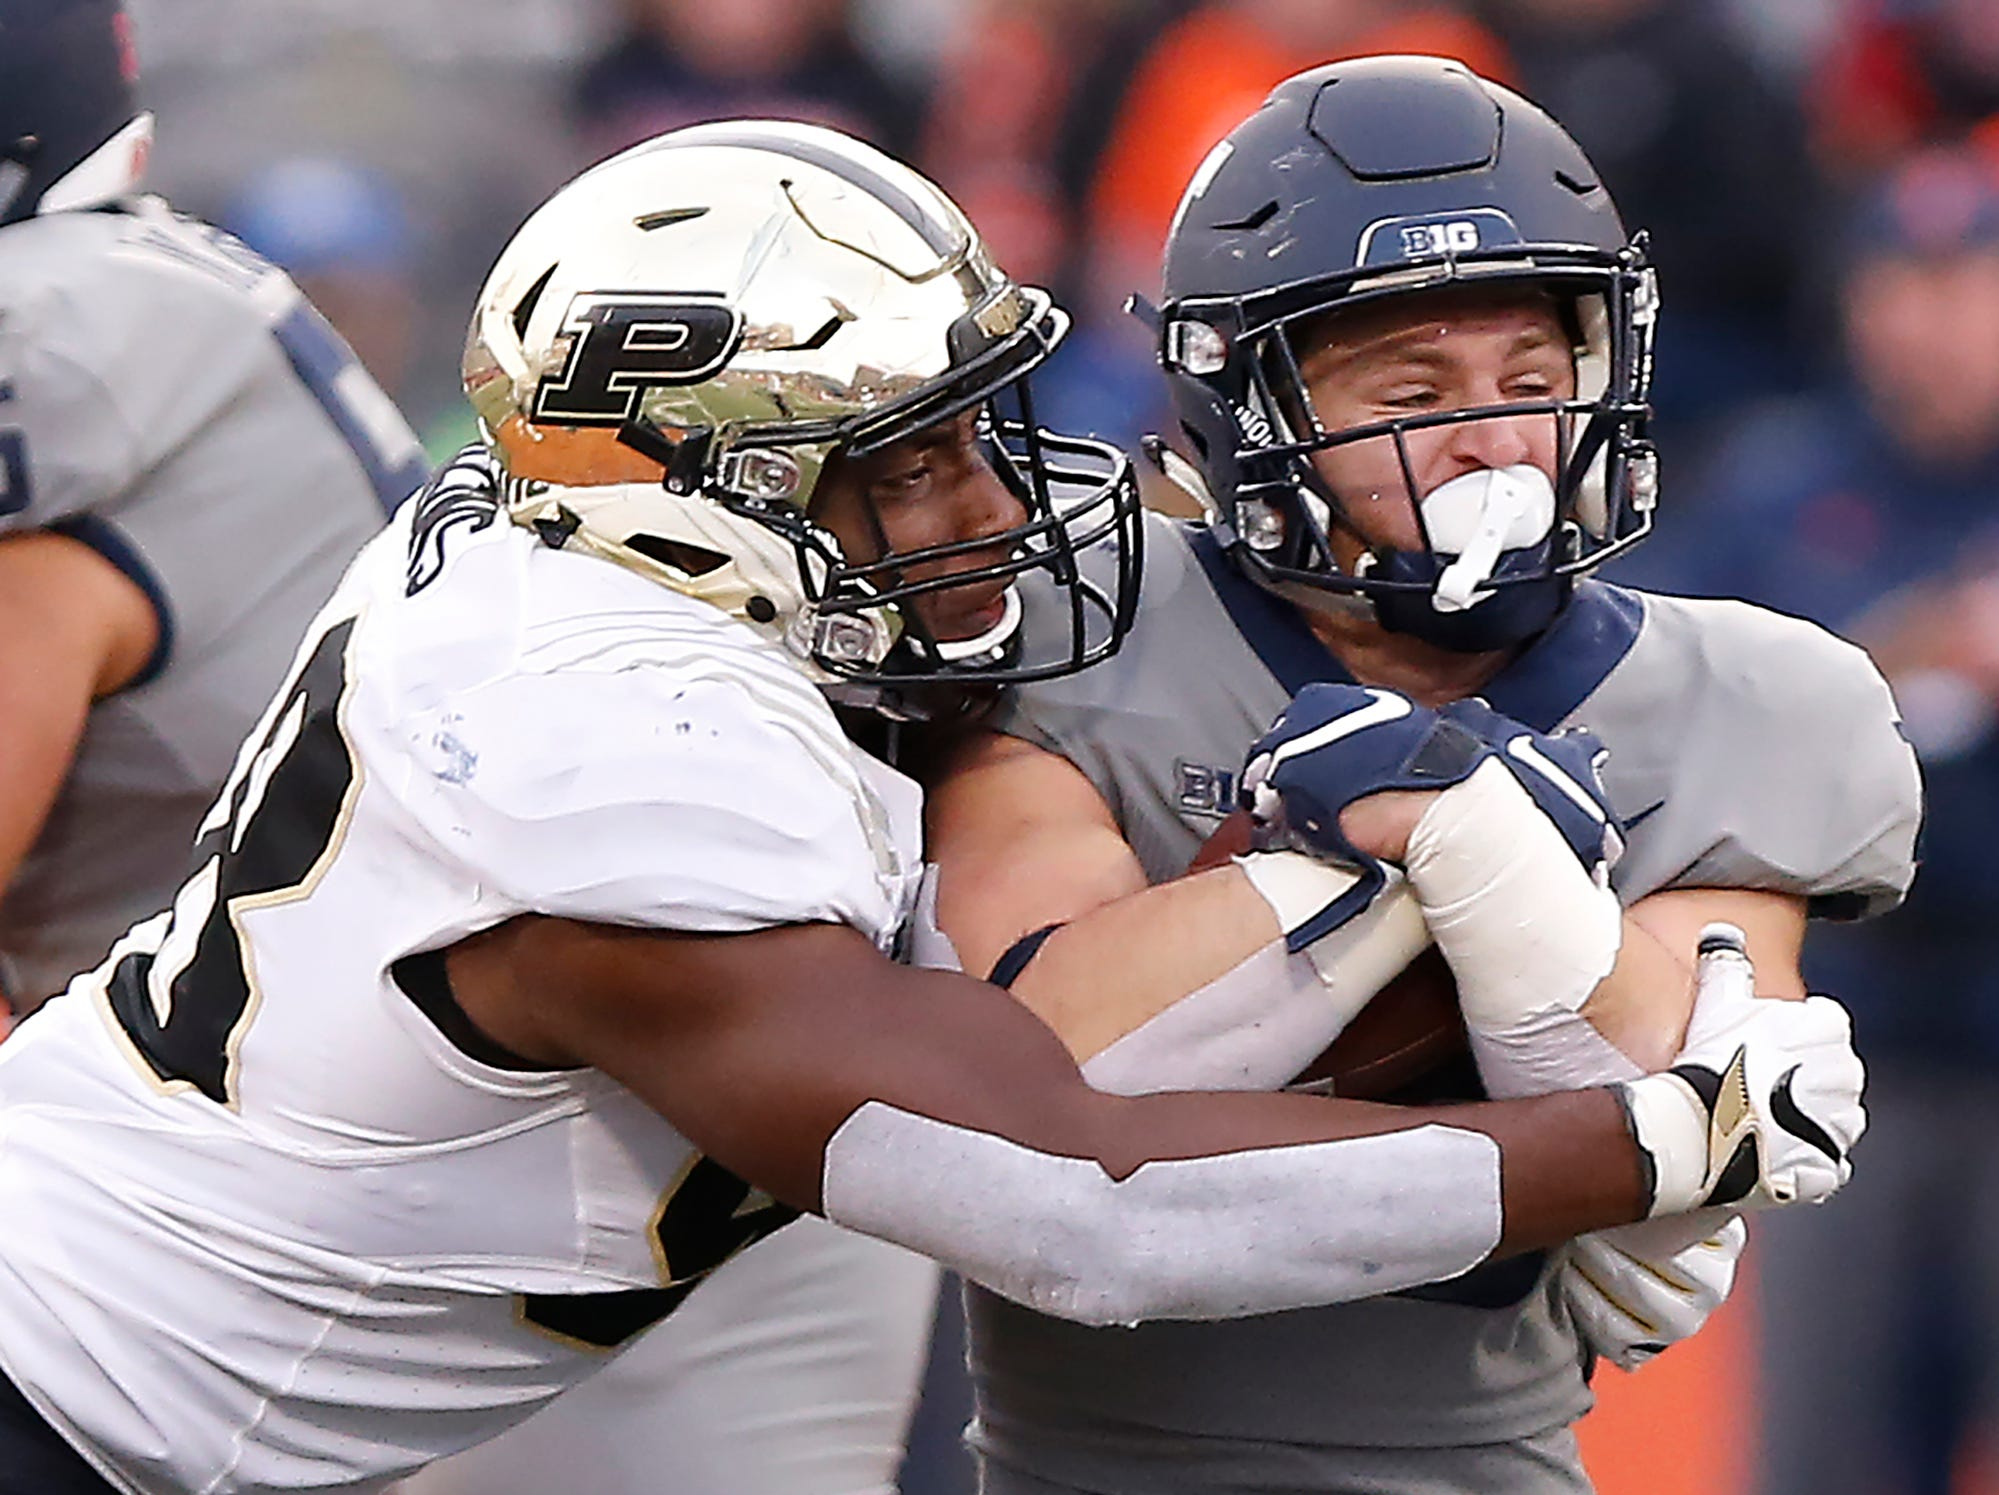 Kai Higgins of Purdue brings down Mike Epstein of Illinois in the second half Saturday, October 13, 2018, in Champaign, Illinois. Purdue thumped Illinois 46-7.